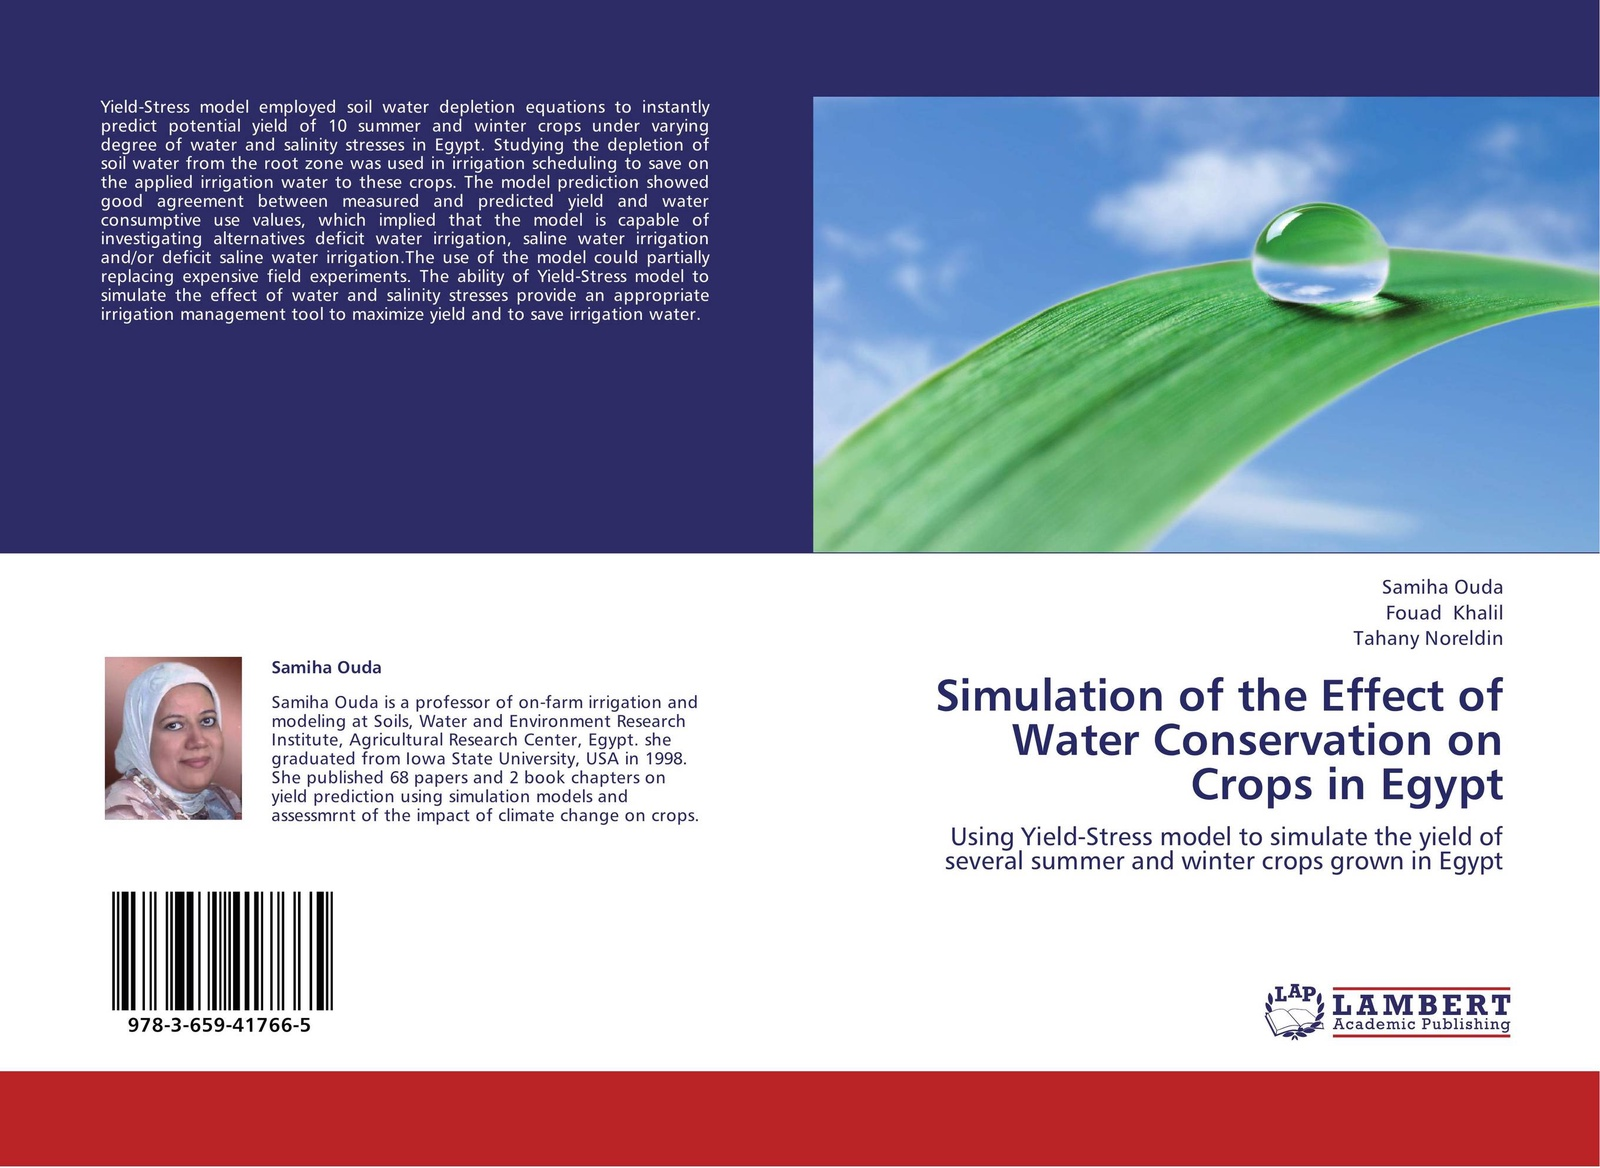 Samiha Ouda,Fouad Khalil and Tahany Noreldin Simulation of the Effect of Water Conservation on Crops in Egypt simulation of the effect of water conservation on crops in egypt